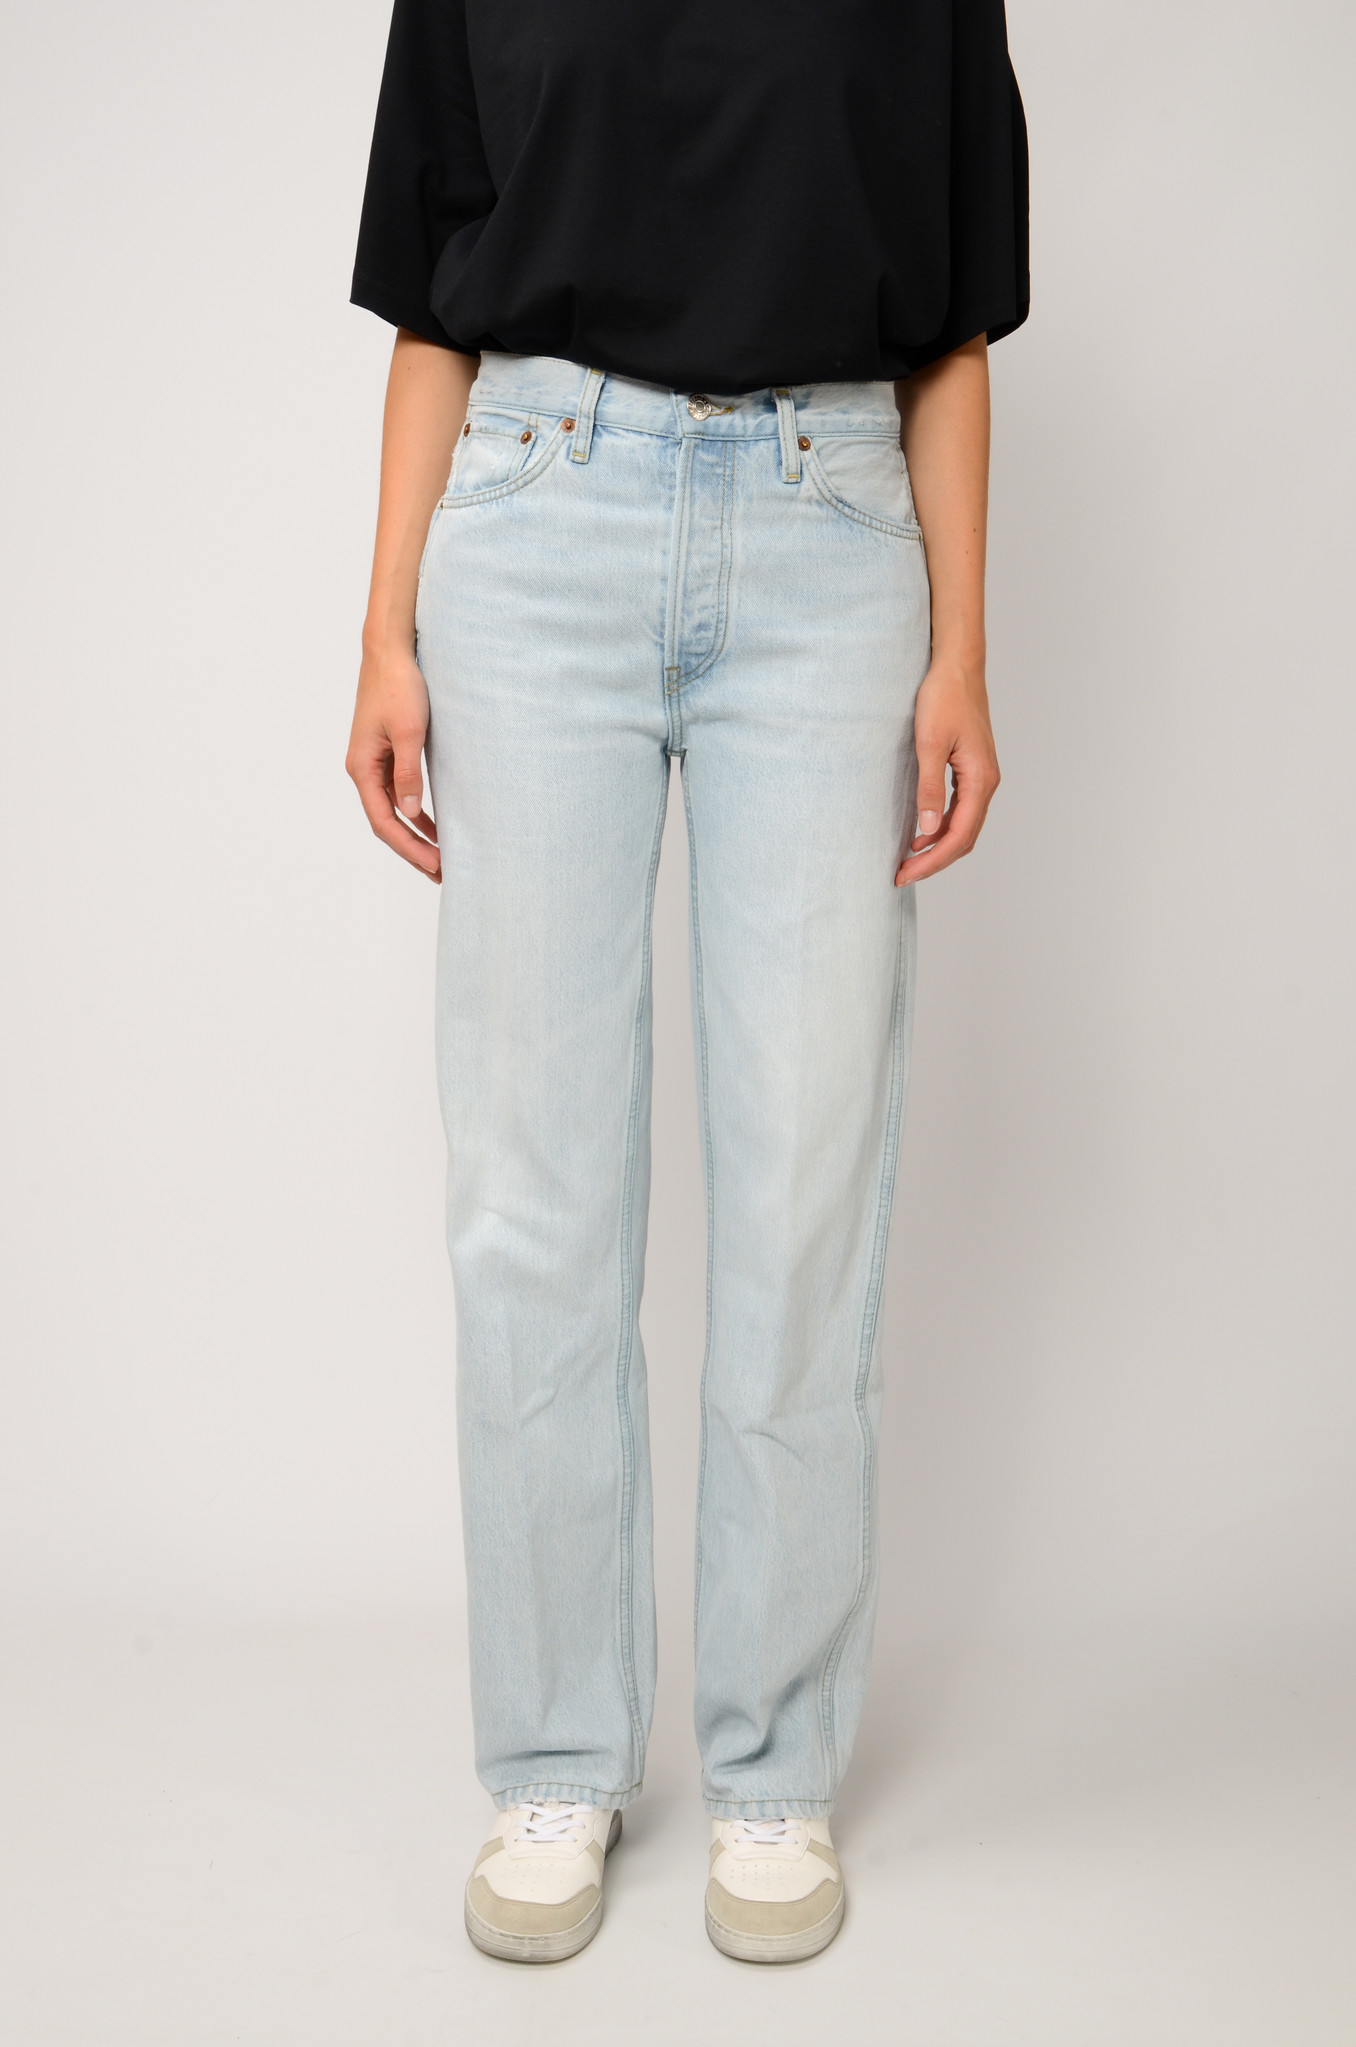 90S HIGH RISE JEANS-6